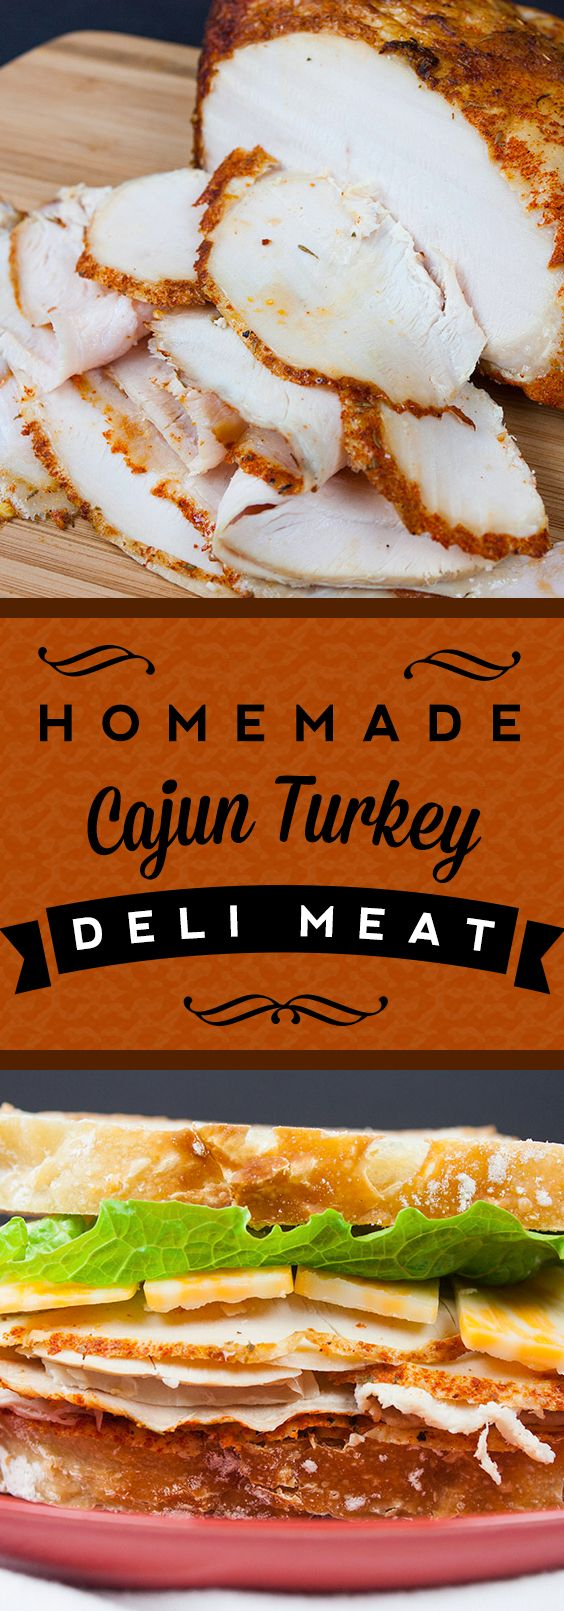 Homemade Cajun Turkey Deli Meat - You will never pay those outrageous prices aga...